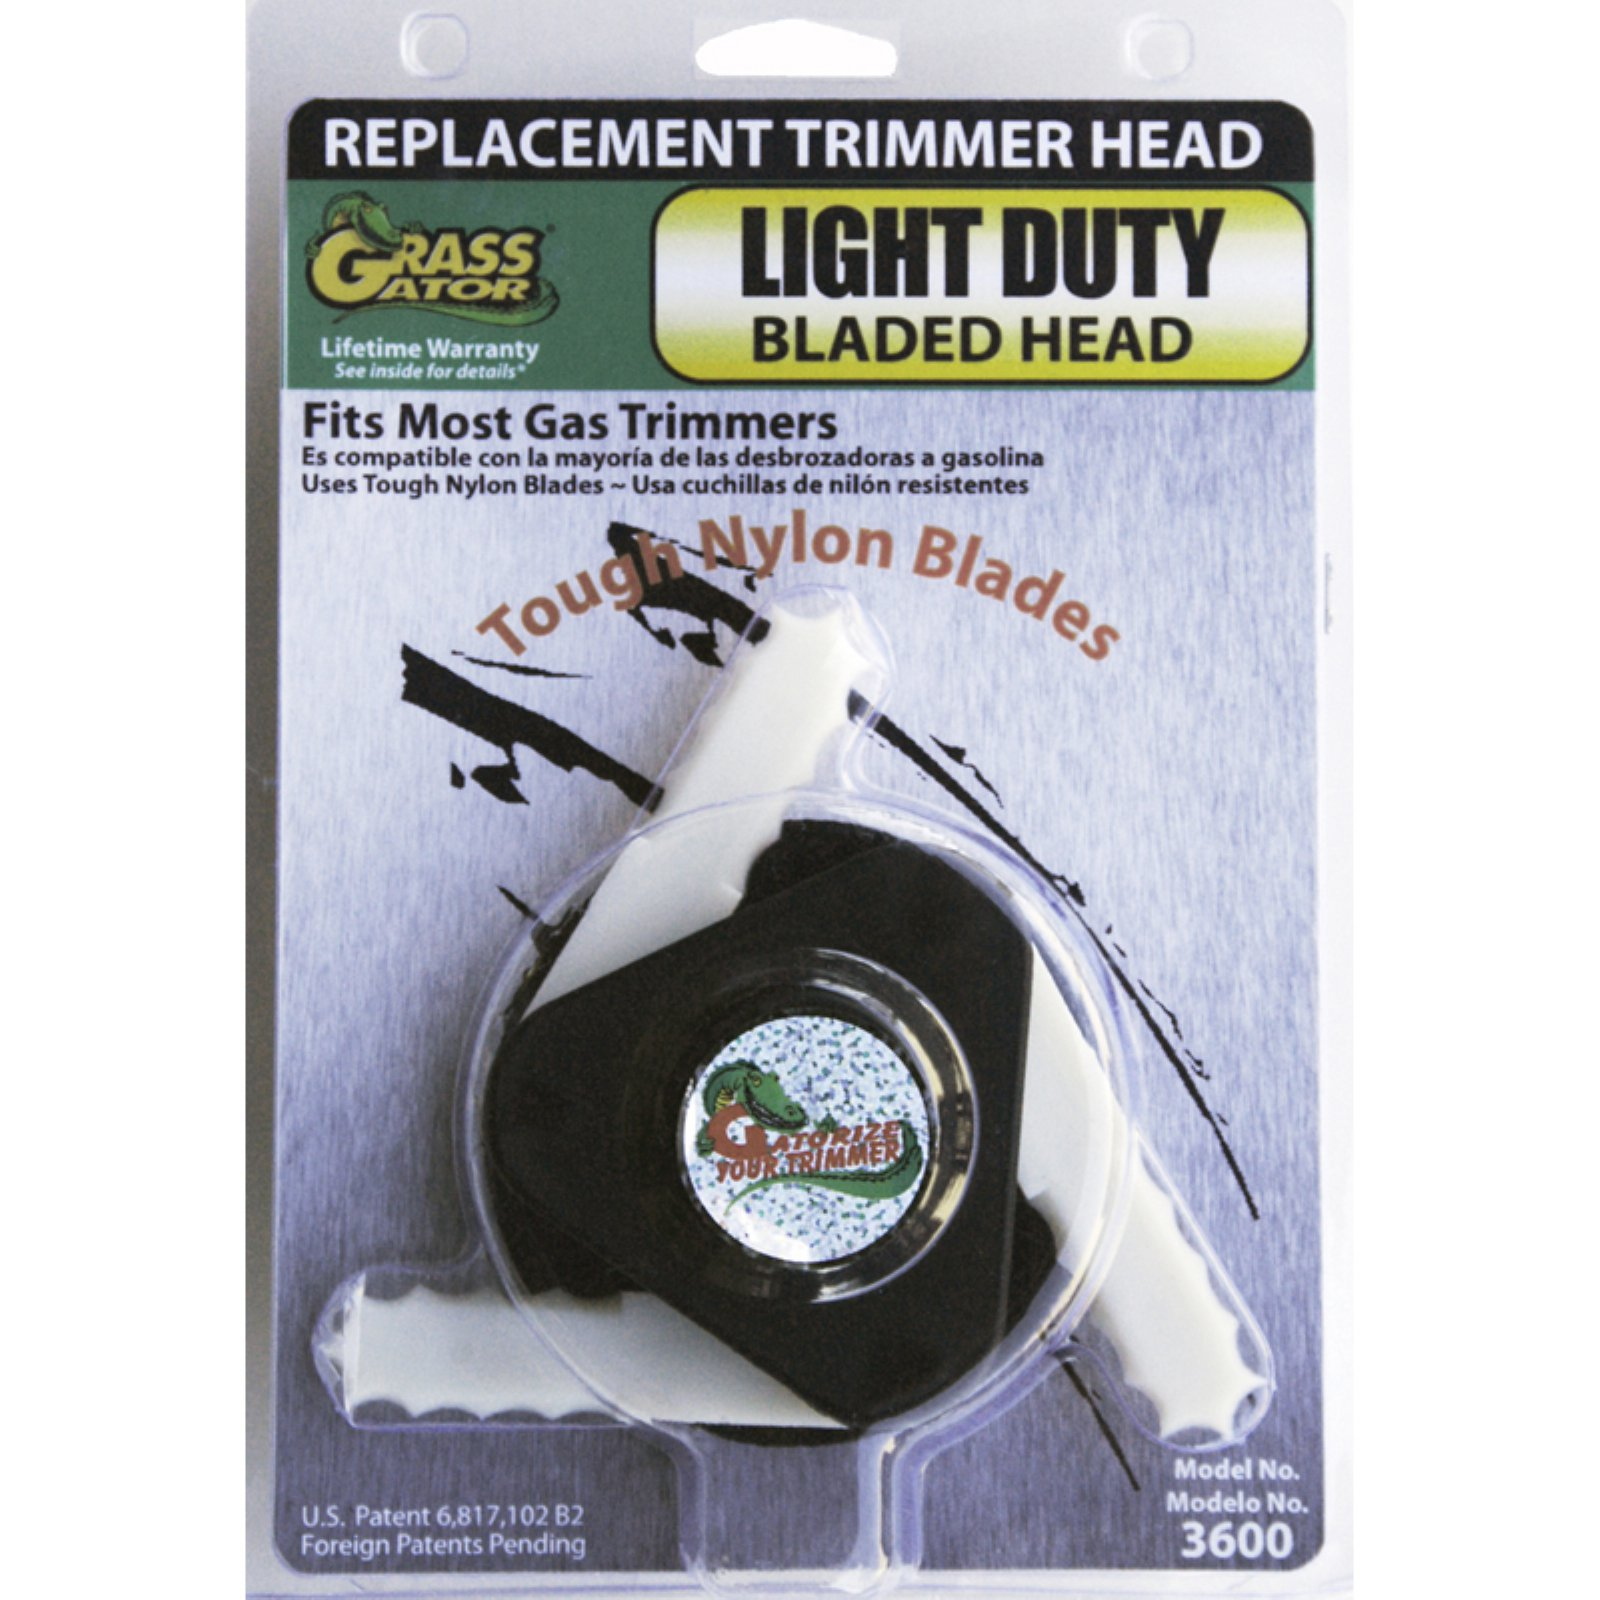 Grass Gator 3600-6 Grass Gator Weed I Replacement Head